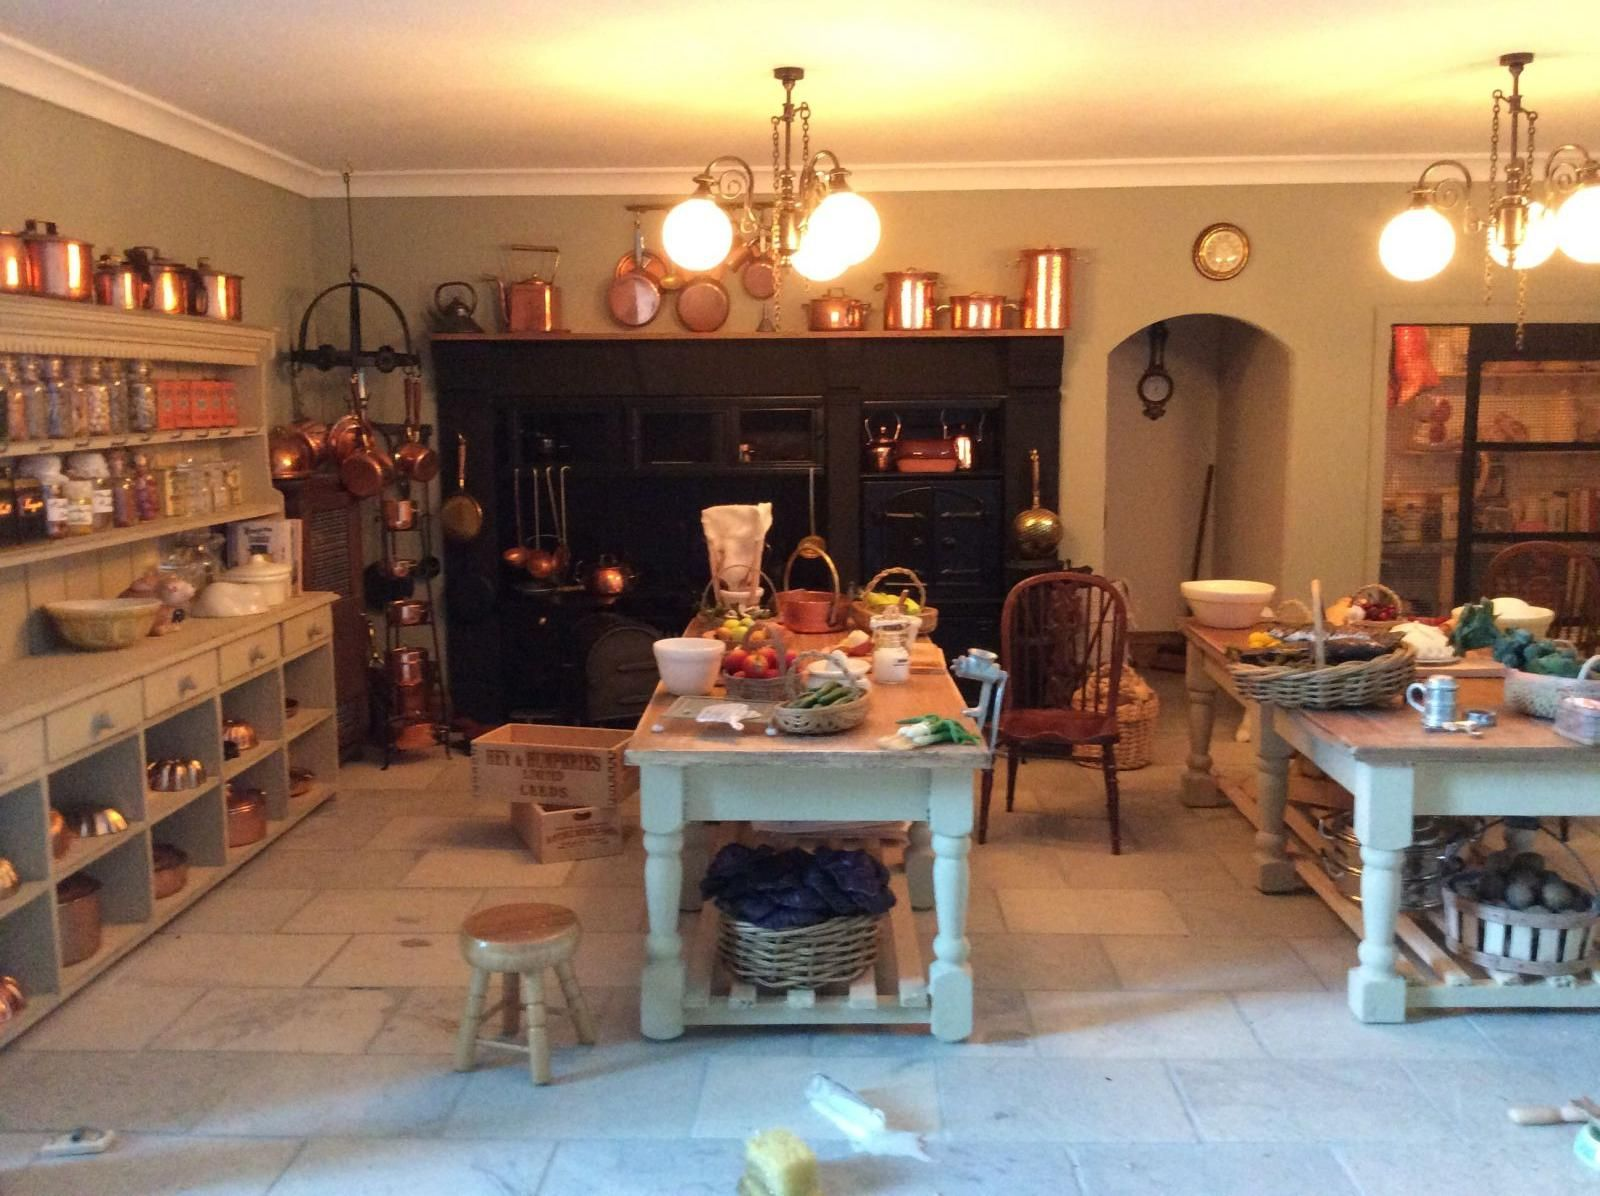 Downton Abbey based kitchen design, by Dolls House Grand Designs, UK ...